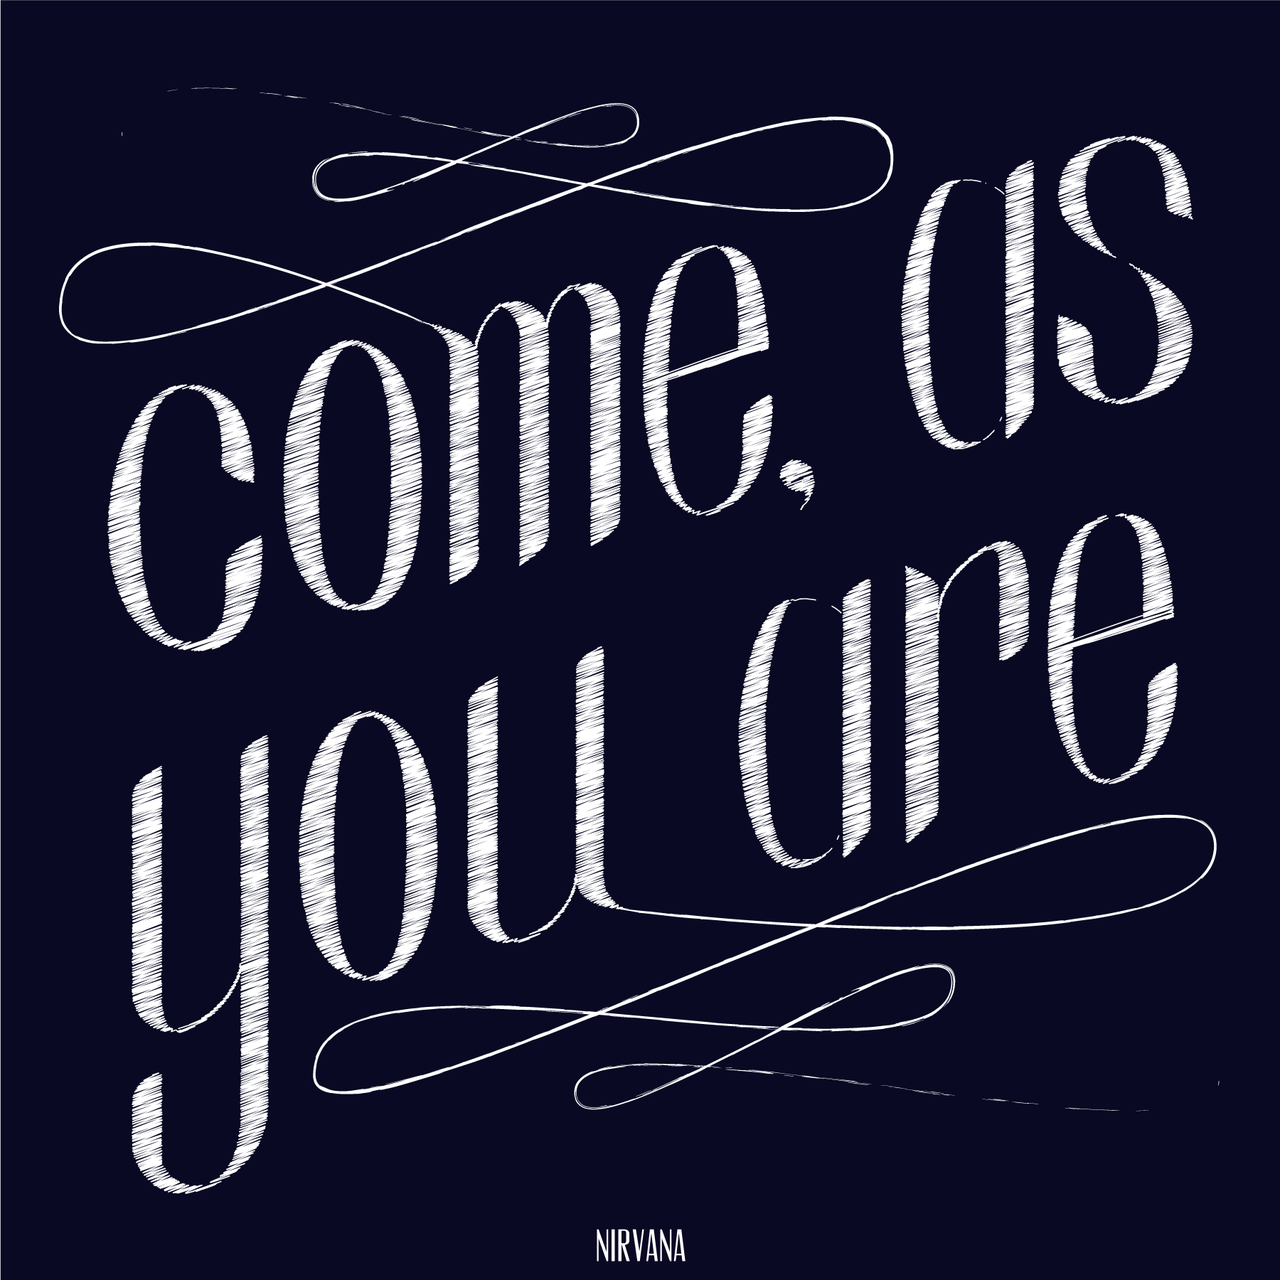 A little project I've been working on: typographical illustration of song lyrics.  Thoughts?